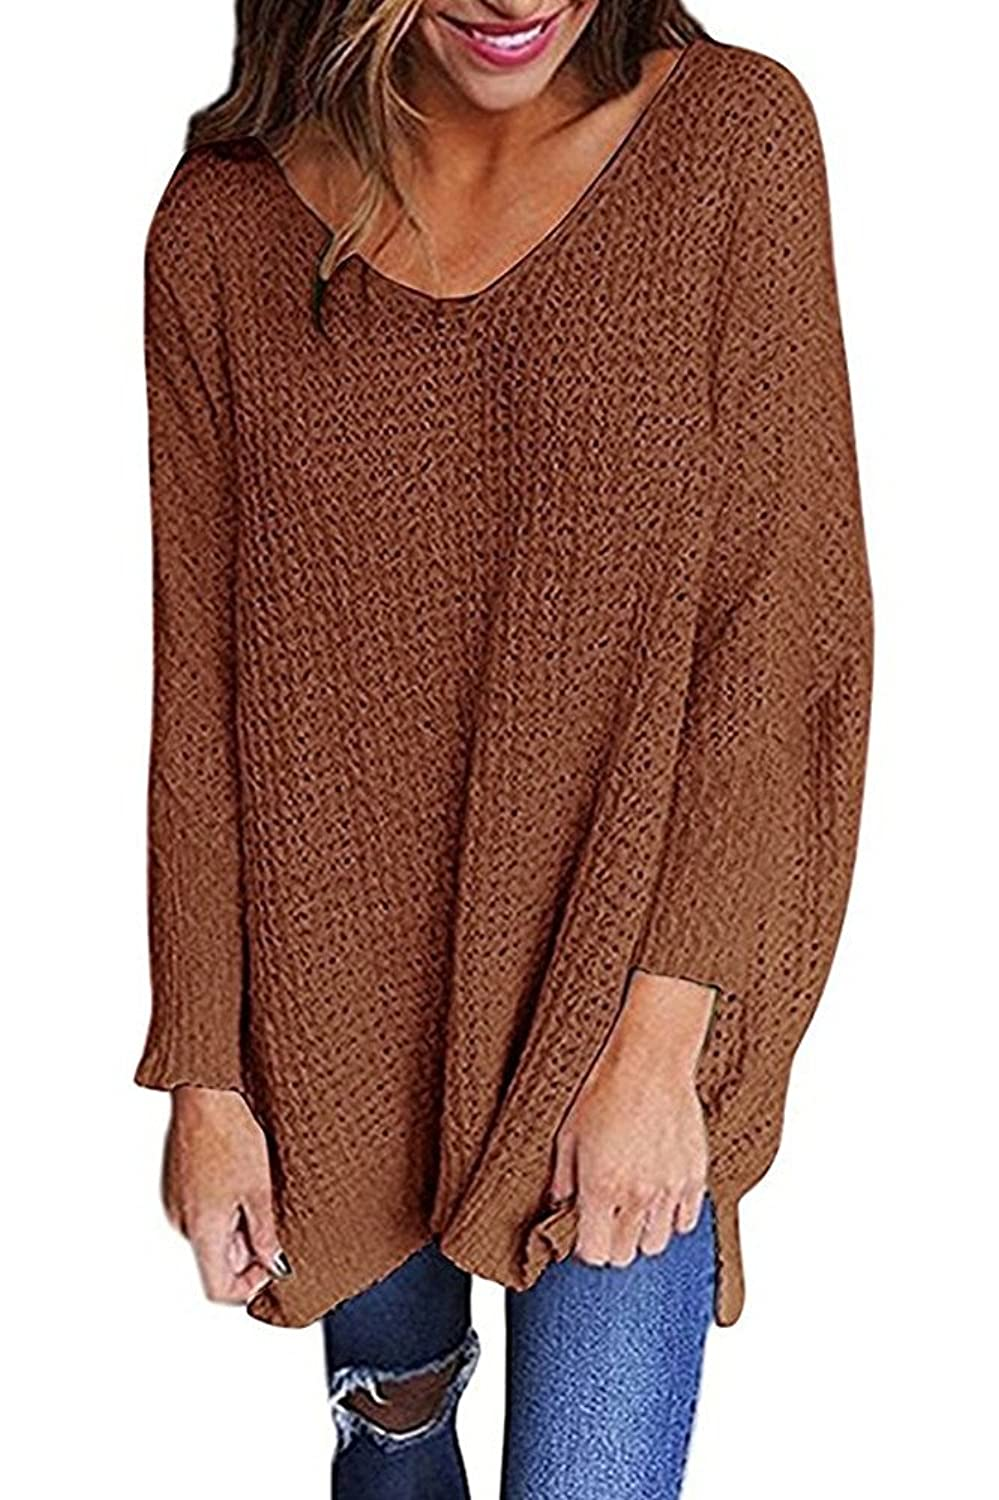 LHAYY Women Oversized Knitted Sweater Long Sleeve V-Neck Loose Top Jumper Pullovers